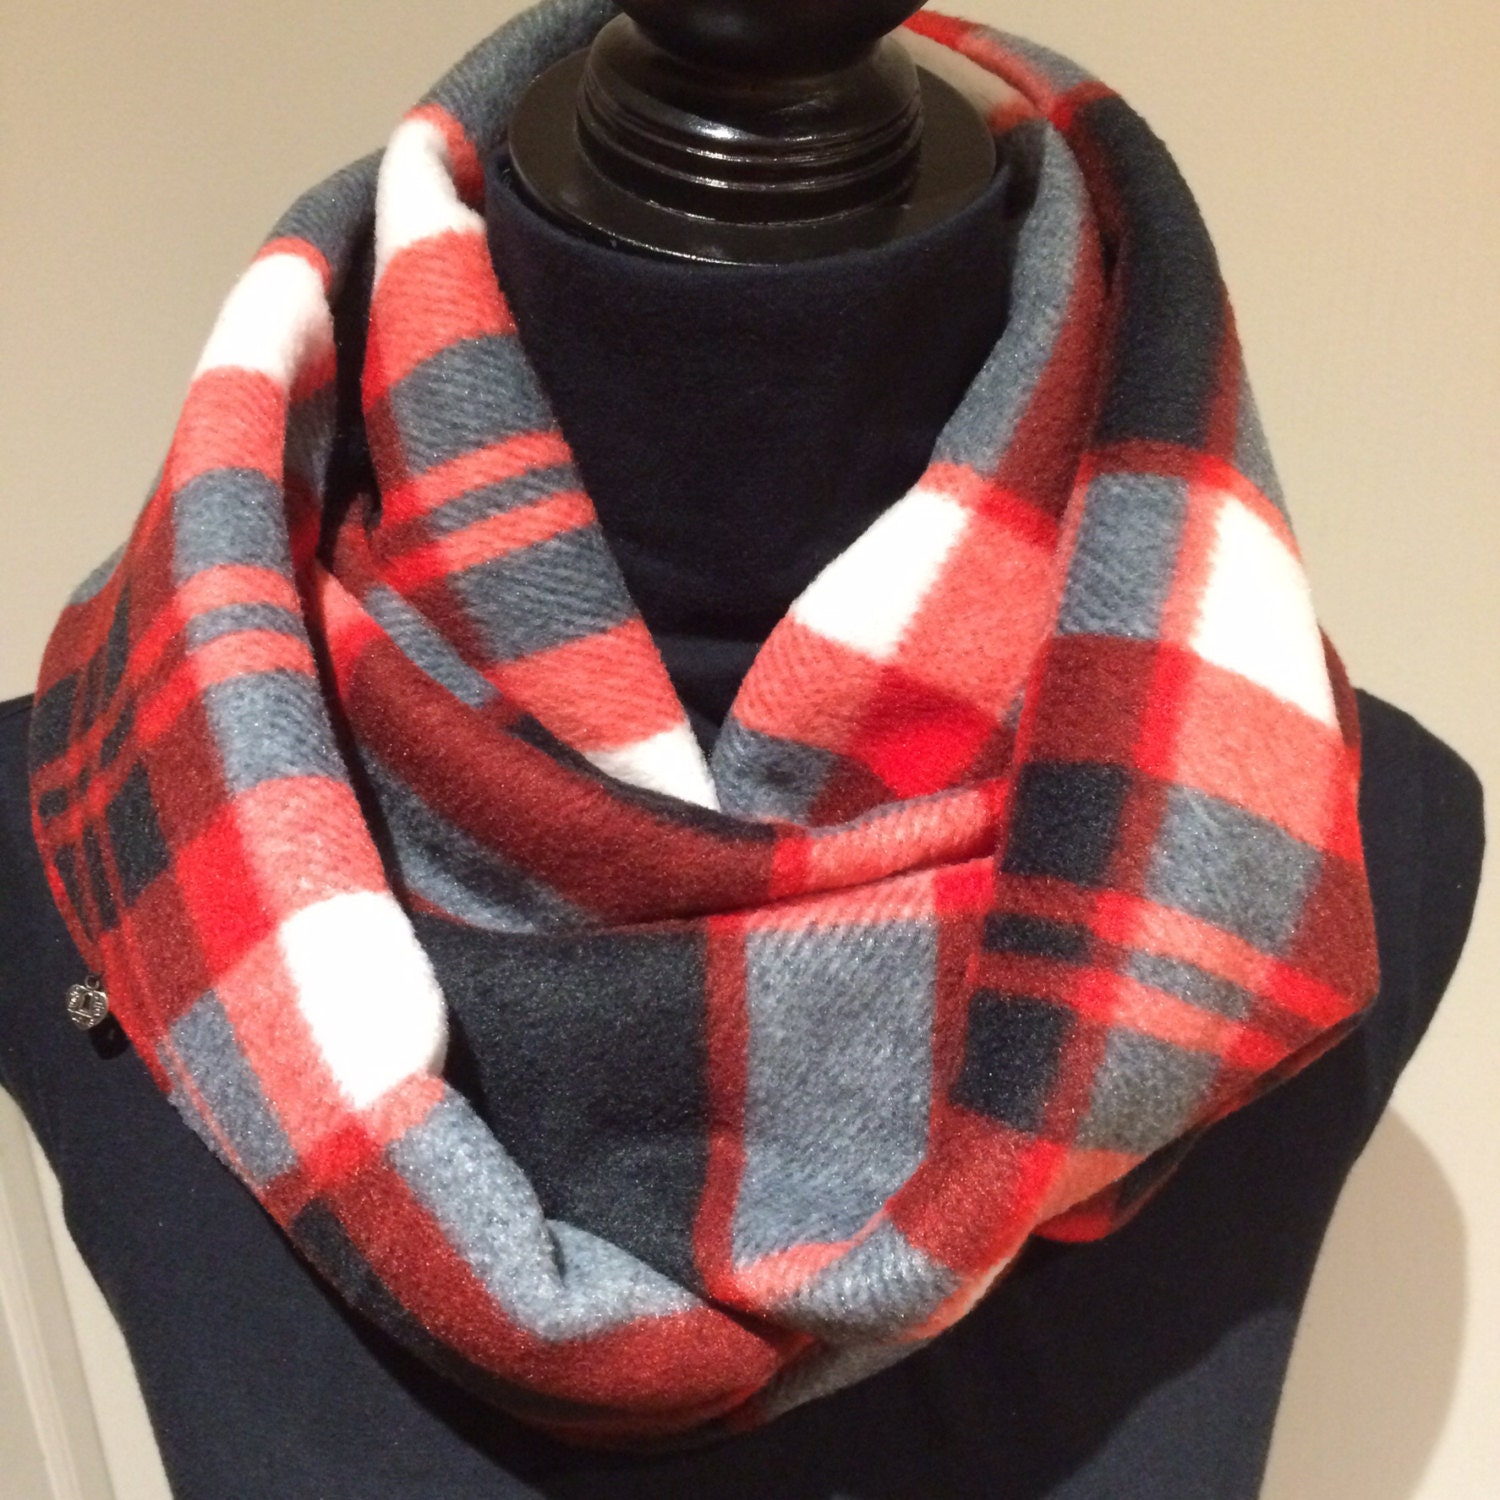 You searched for: red fleece scarf! Etsy is the home to thousands of handmade, vintage, and one-of-a-kind products and gifts related to your search. No matter what you're looking for or where you are in the world, our global marketplace of sellers can help you find unique and affordable options. Let's get started!